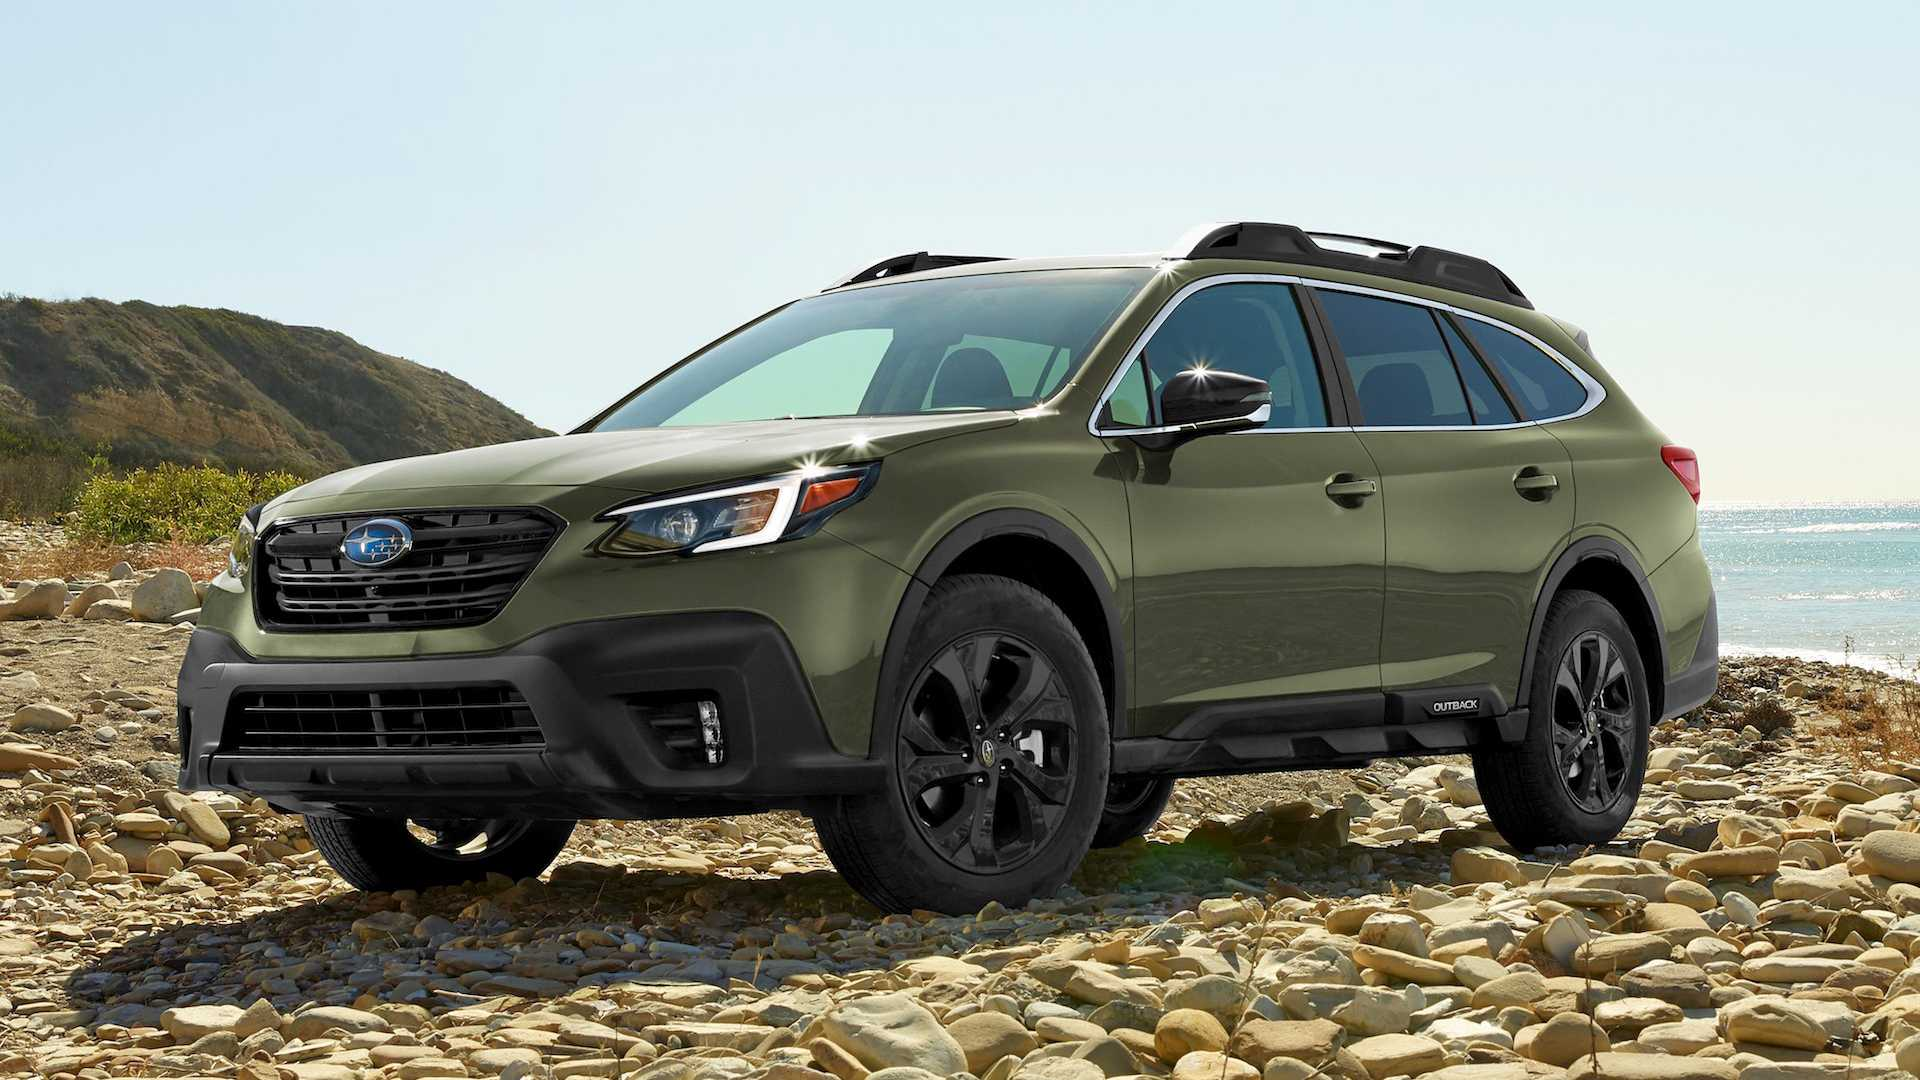 85 All New Subaru Outback New Model 2020 New Concept